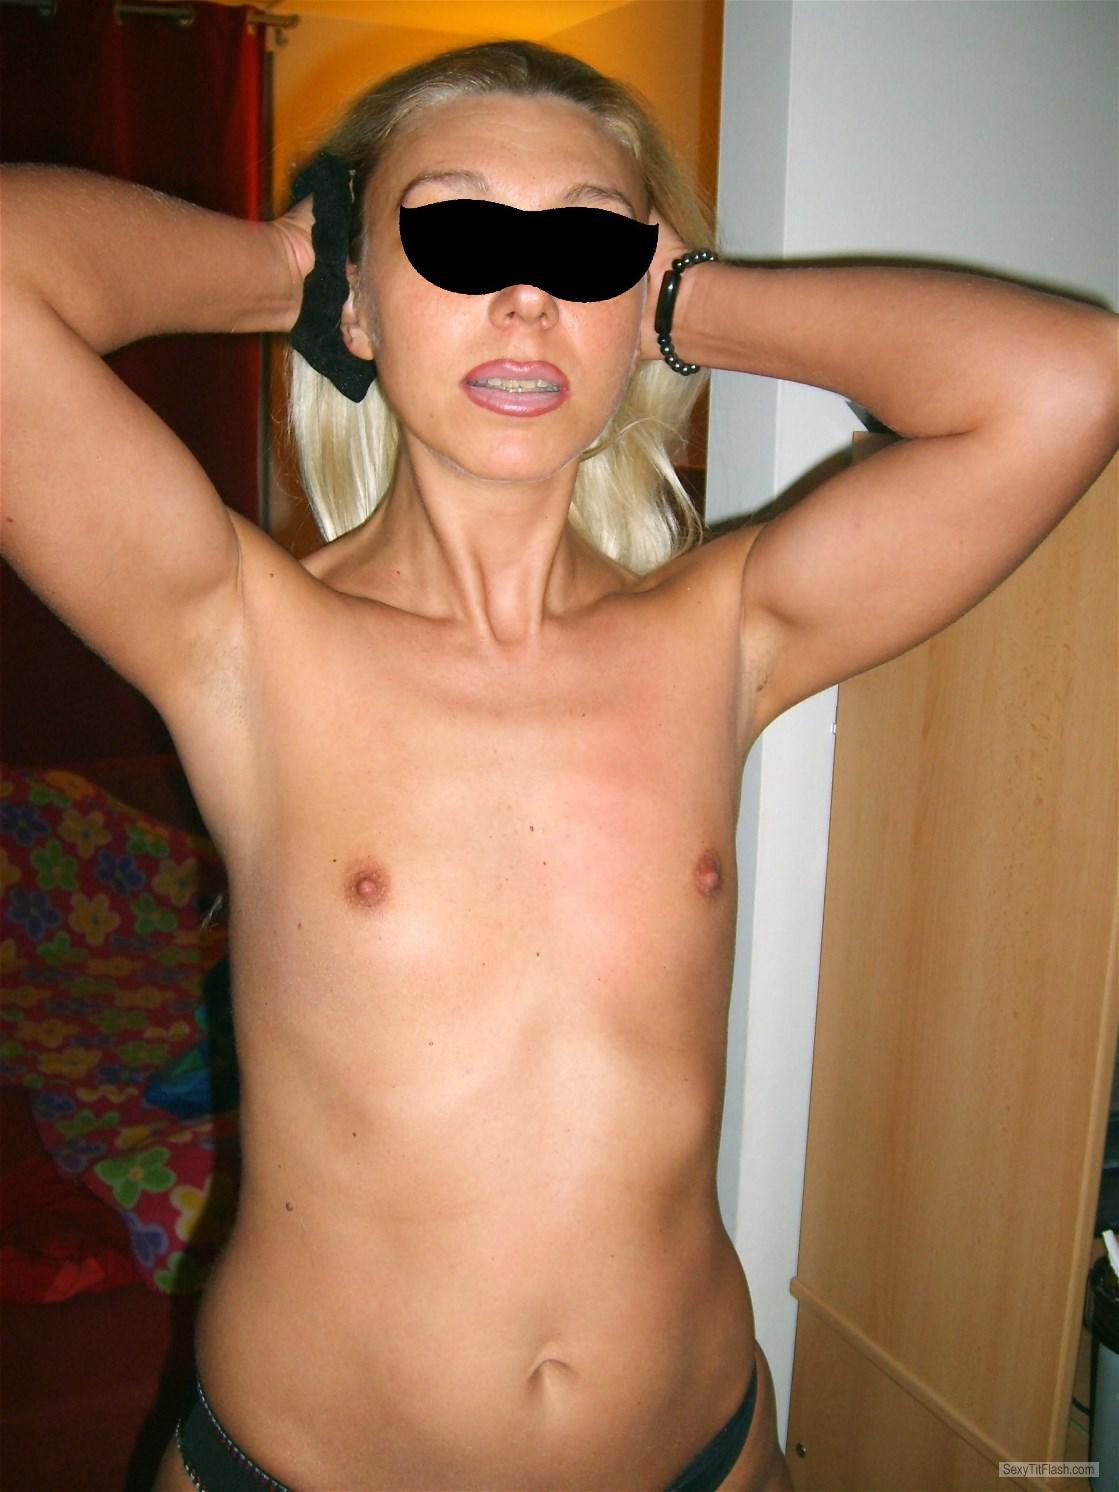 Very small Tits Of My Wife Nadja